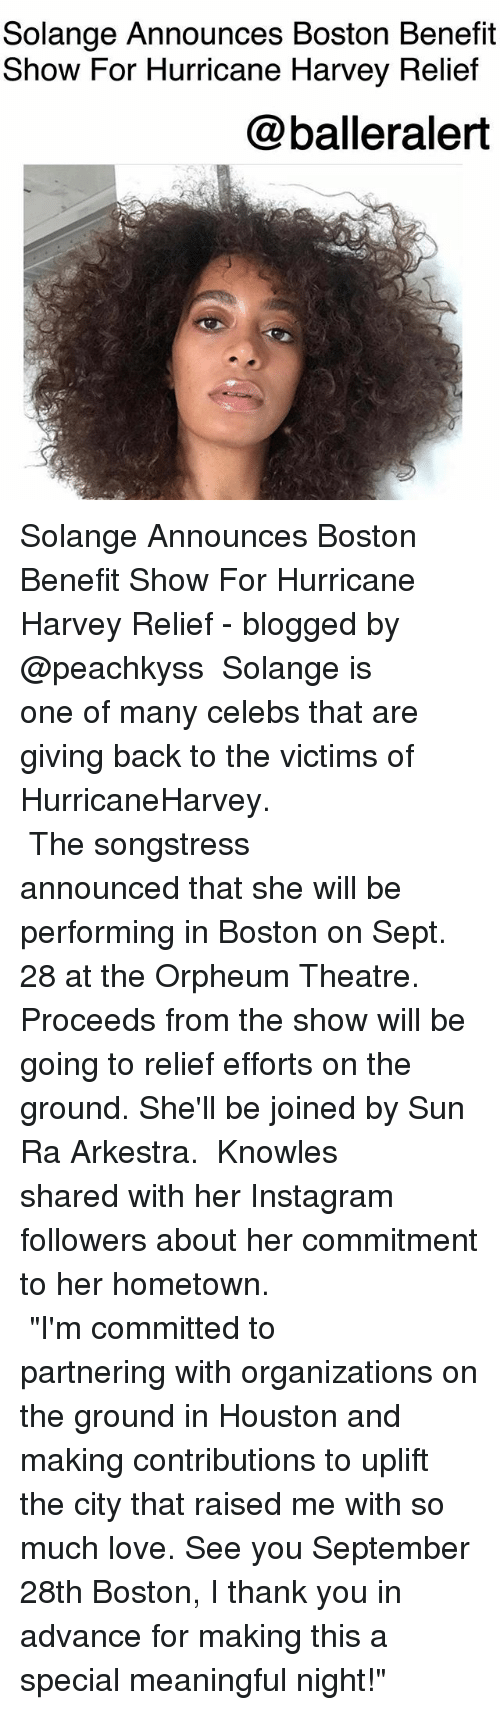 """knowles: Solange Announces Boston Benefit  Show For Hurricane Harvey Relief  @balleralert Solange Announces Boston Benefit Show For Hurricane Harvey Relief - blogged by @peachkyss ⠀⠀⠀⠀⠀⠀⠀ Solange is one of many celebs that are giving back to the victims of HurricaneHarvey. ⠀⠀⠀⠀⠀⠀⠀ ⠀⠀⠀⠀⠀⠀⠀ ⠀⠀⠀⠀⠀⠀⠀ The songstress announced that she will be performing in Boston on Sept. 28 at the Orpheum Theatre. Proceeds from the show will be going to relief efforts on the ground. She'll be joined by Sun Ra Arkestra. ⠀⠀⠀⠀⠀⠀⠀ Knowles shared with her Instagram followers about her commitment to her hometown. ⠀⠀⠀⠀⠀⠀⠀ ⠀⠀⠀⠀⠀⠀⠀ ⠀⠀⠀⠀⠀⠀⠀ """"I'm committed to partnering with organizations on the ground in Houston and making contributions to uplift the city that raised me with so much love. See you September 28th Boston, I thank you in advance for making this a special meaningful night!"""""""